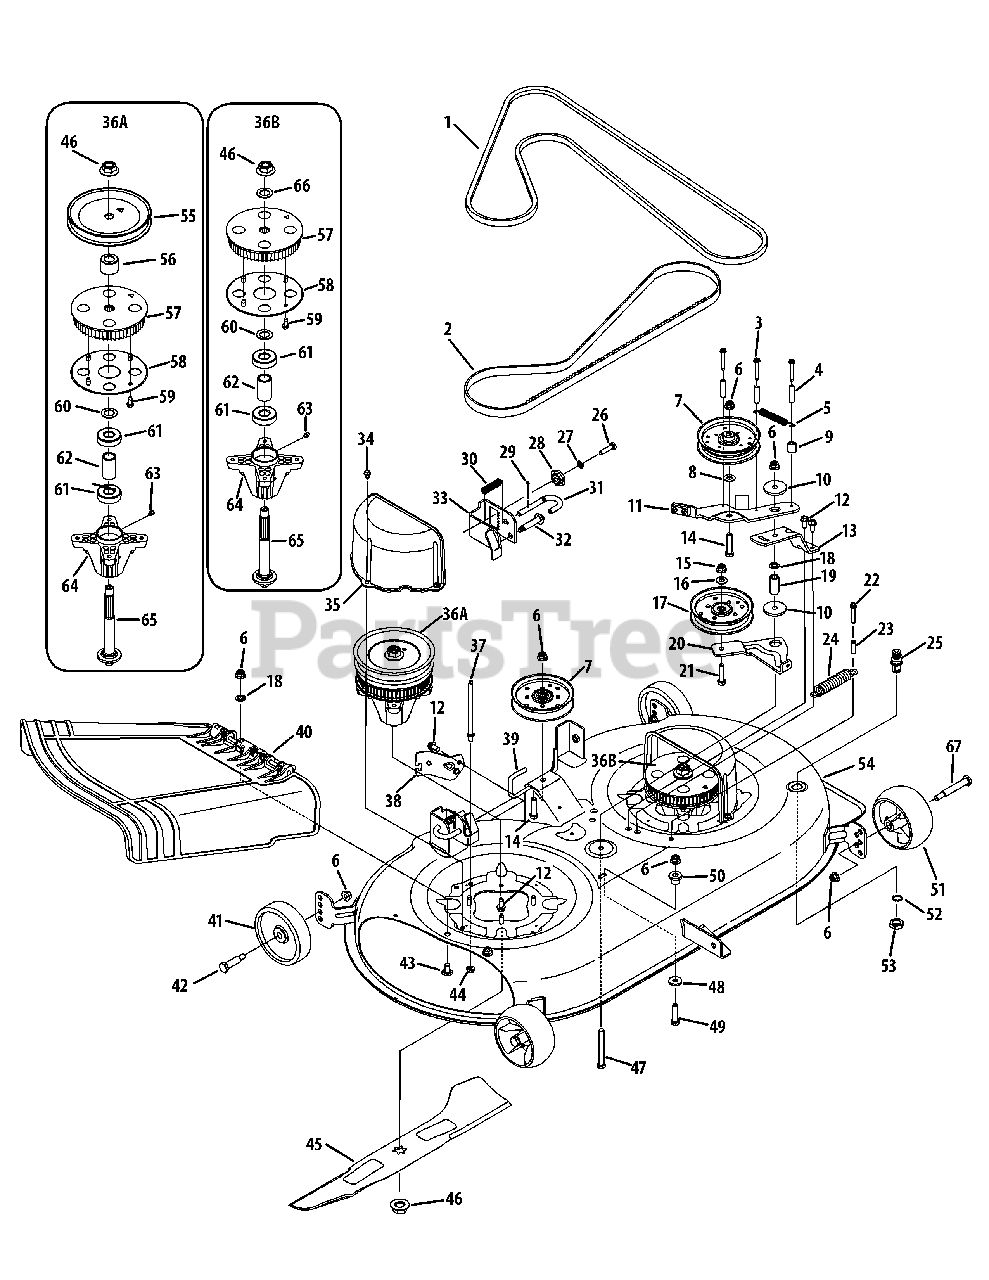 Cub Cadet Parts on the Mowing Deck 42 Inch Diagram for LTX